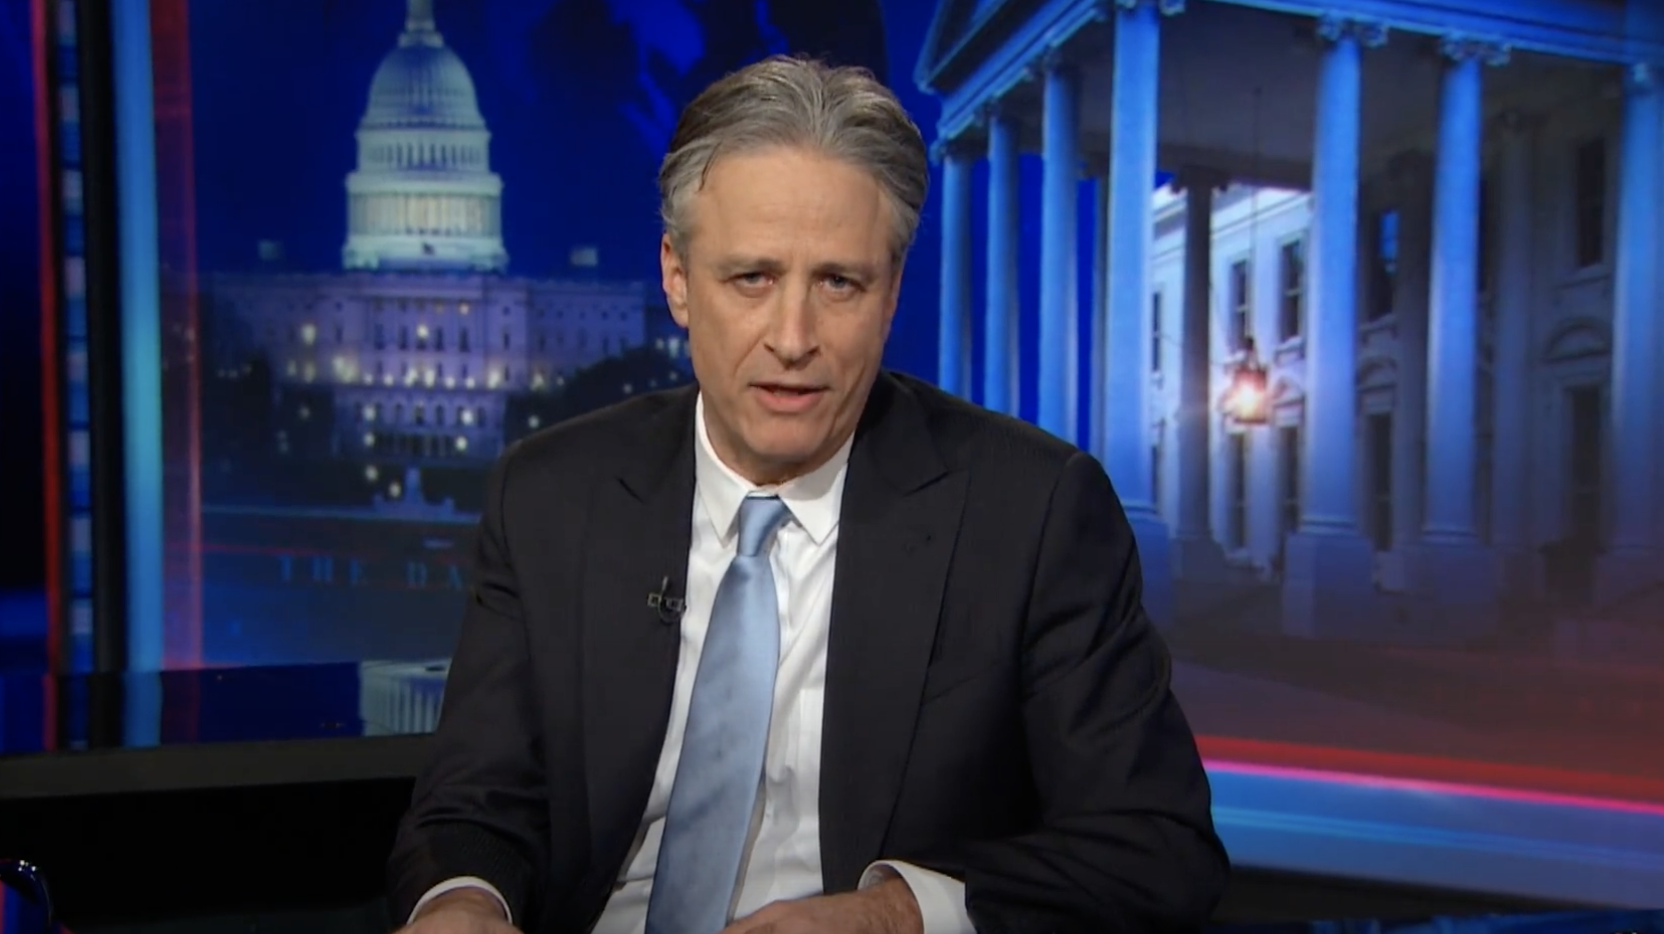 Jon Stewart Current Affairs Show Coming To Apple TV+